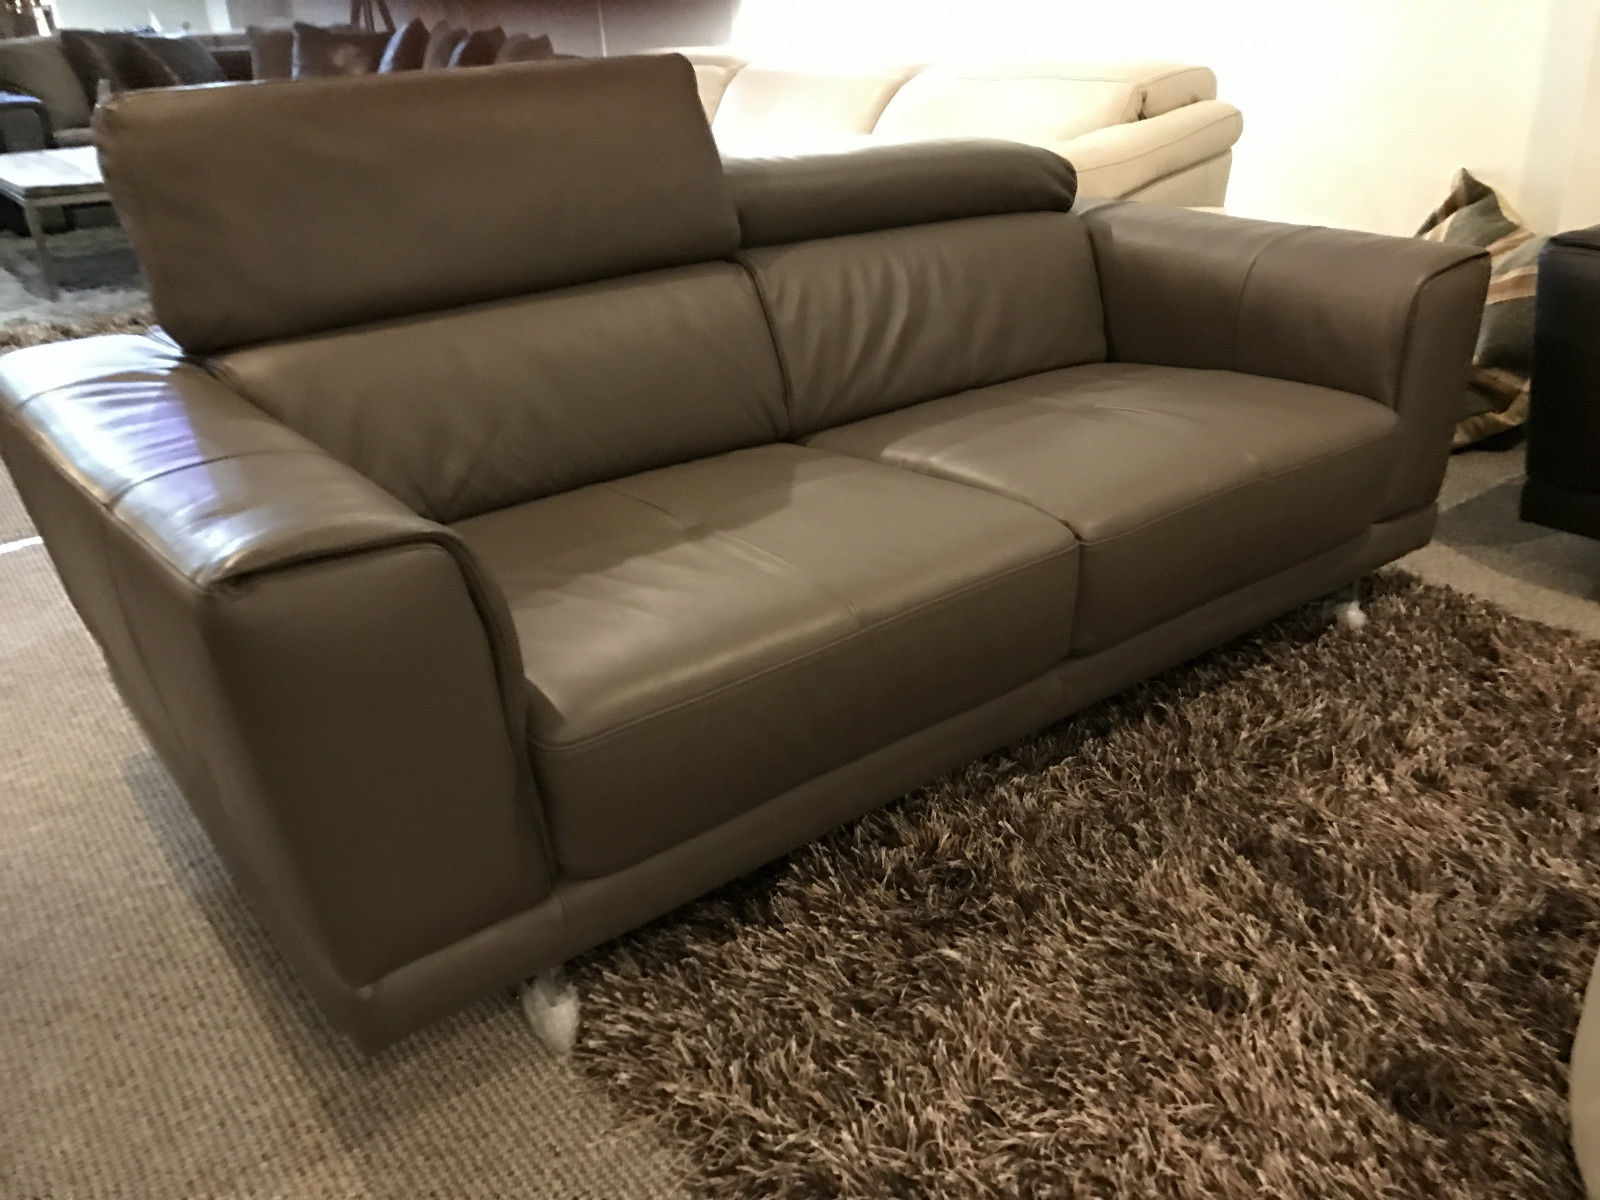 natuzzi sofa bed clearance modern fabric texture editions b887 raphael large 2 seater